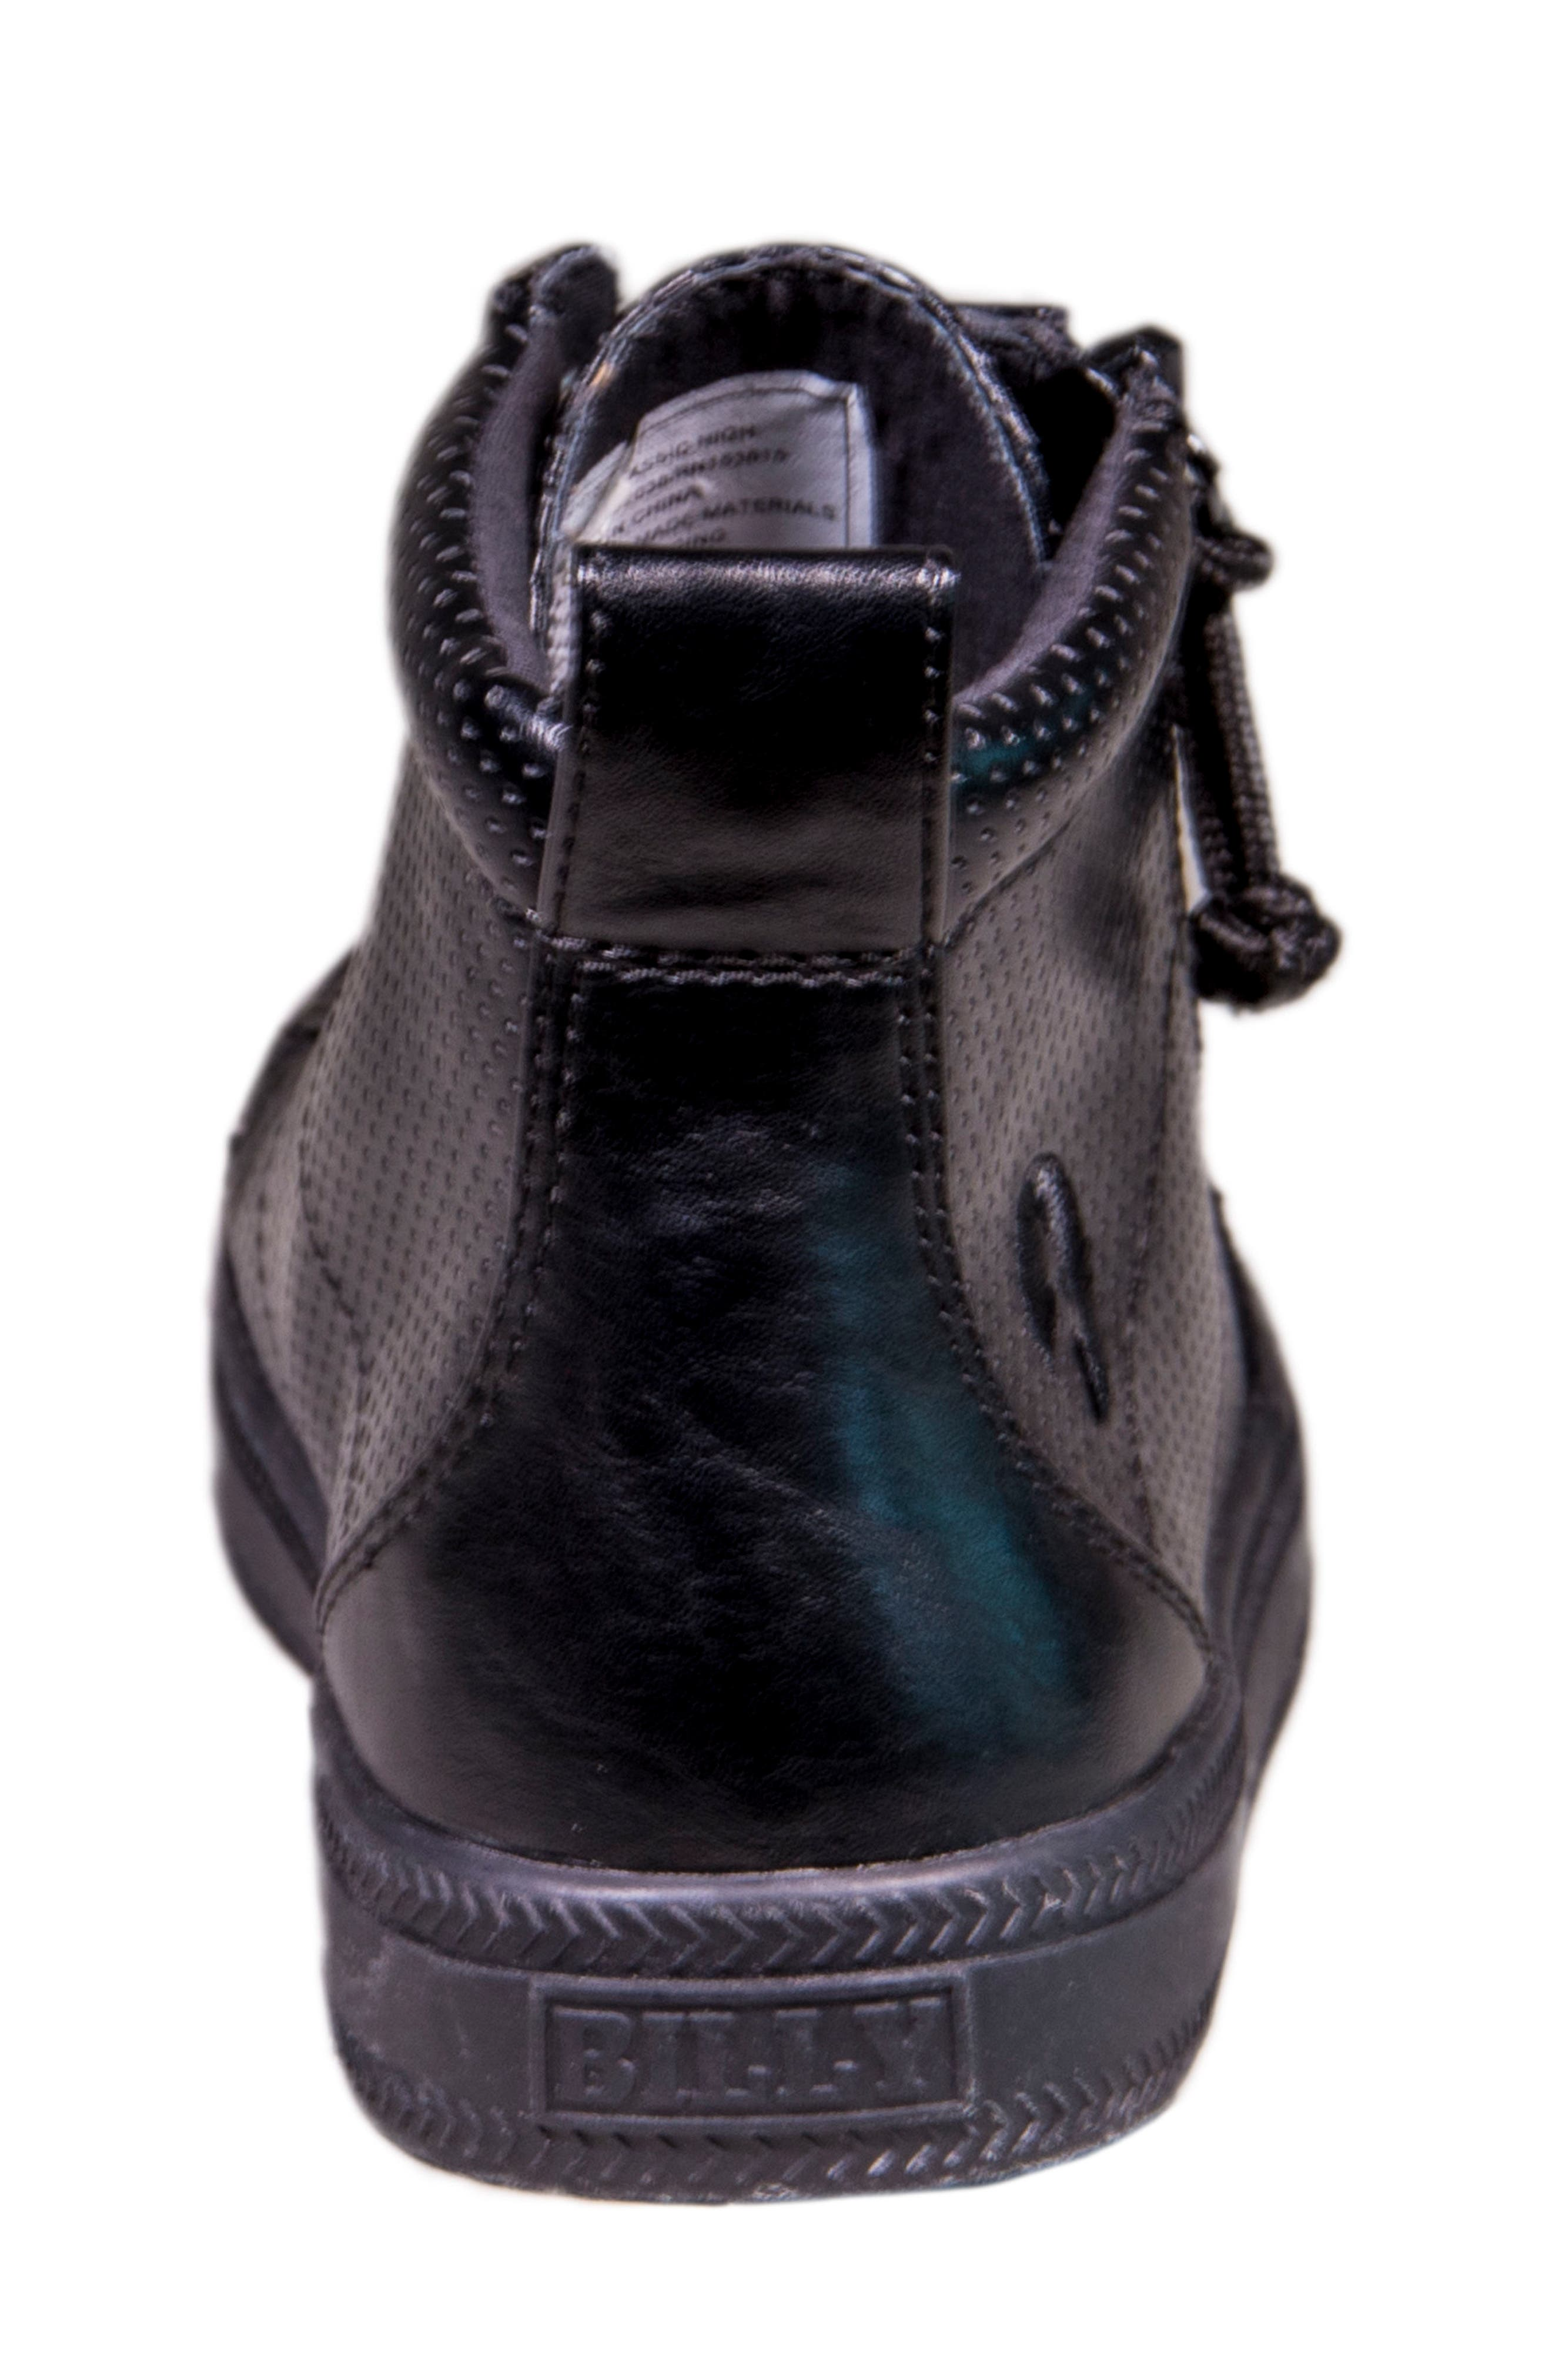 Zip Around Perforated High Top Sneaker,                             Alternate thumbnail 7, color,                             Black Perforated